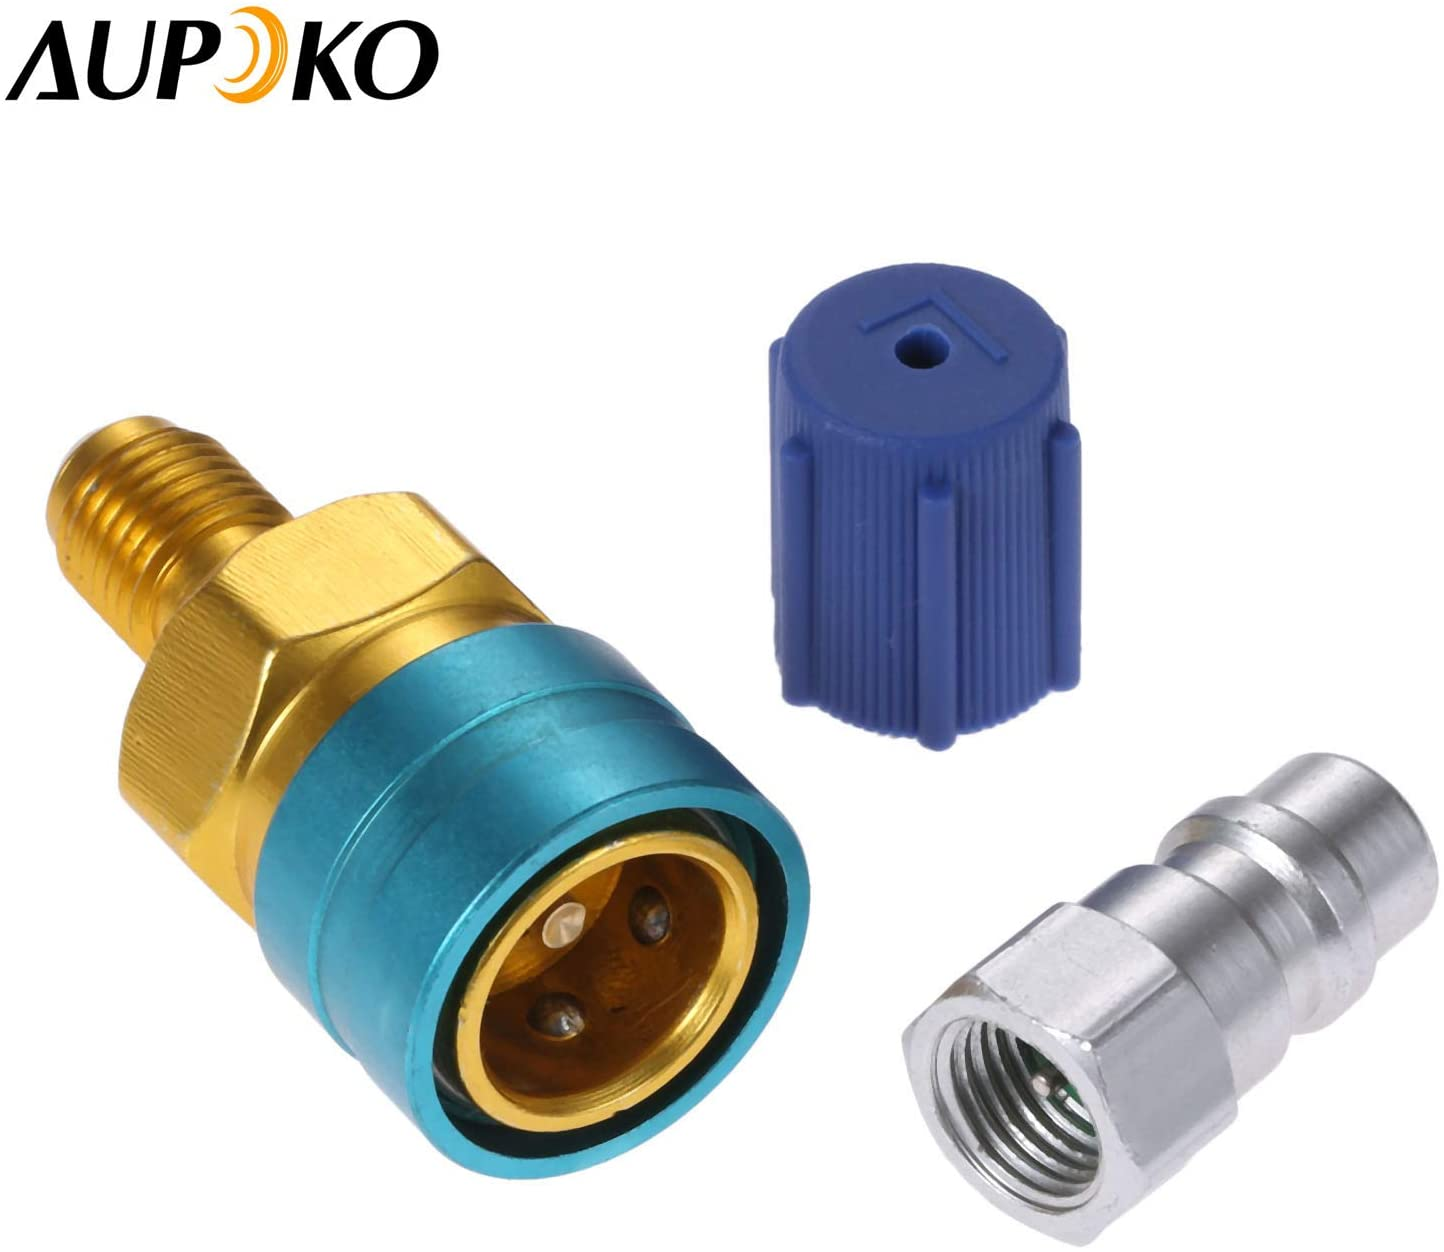 R12 to R134A Hose Adapter Fitting Connector for Car Air-Conditioning AC Charging R1234YF to R134A Low Side Quick Coupler